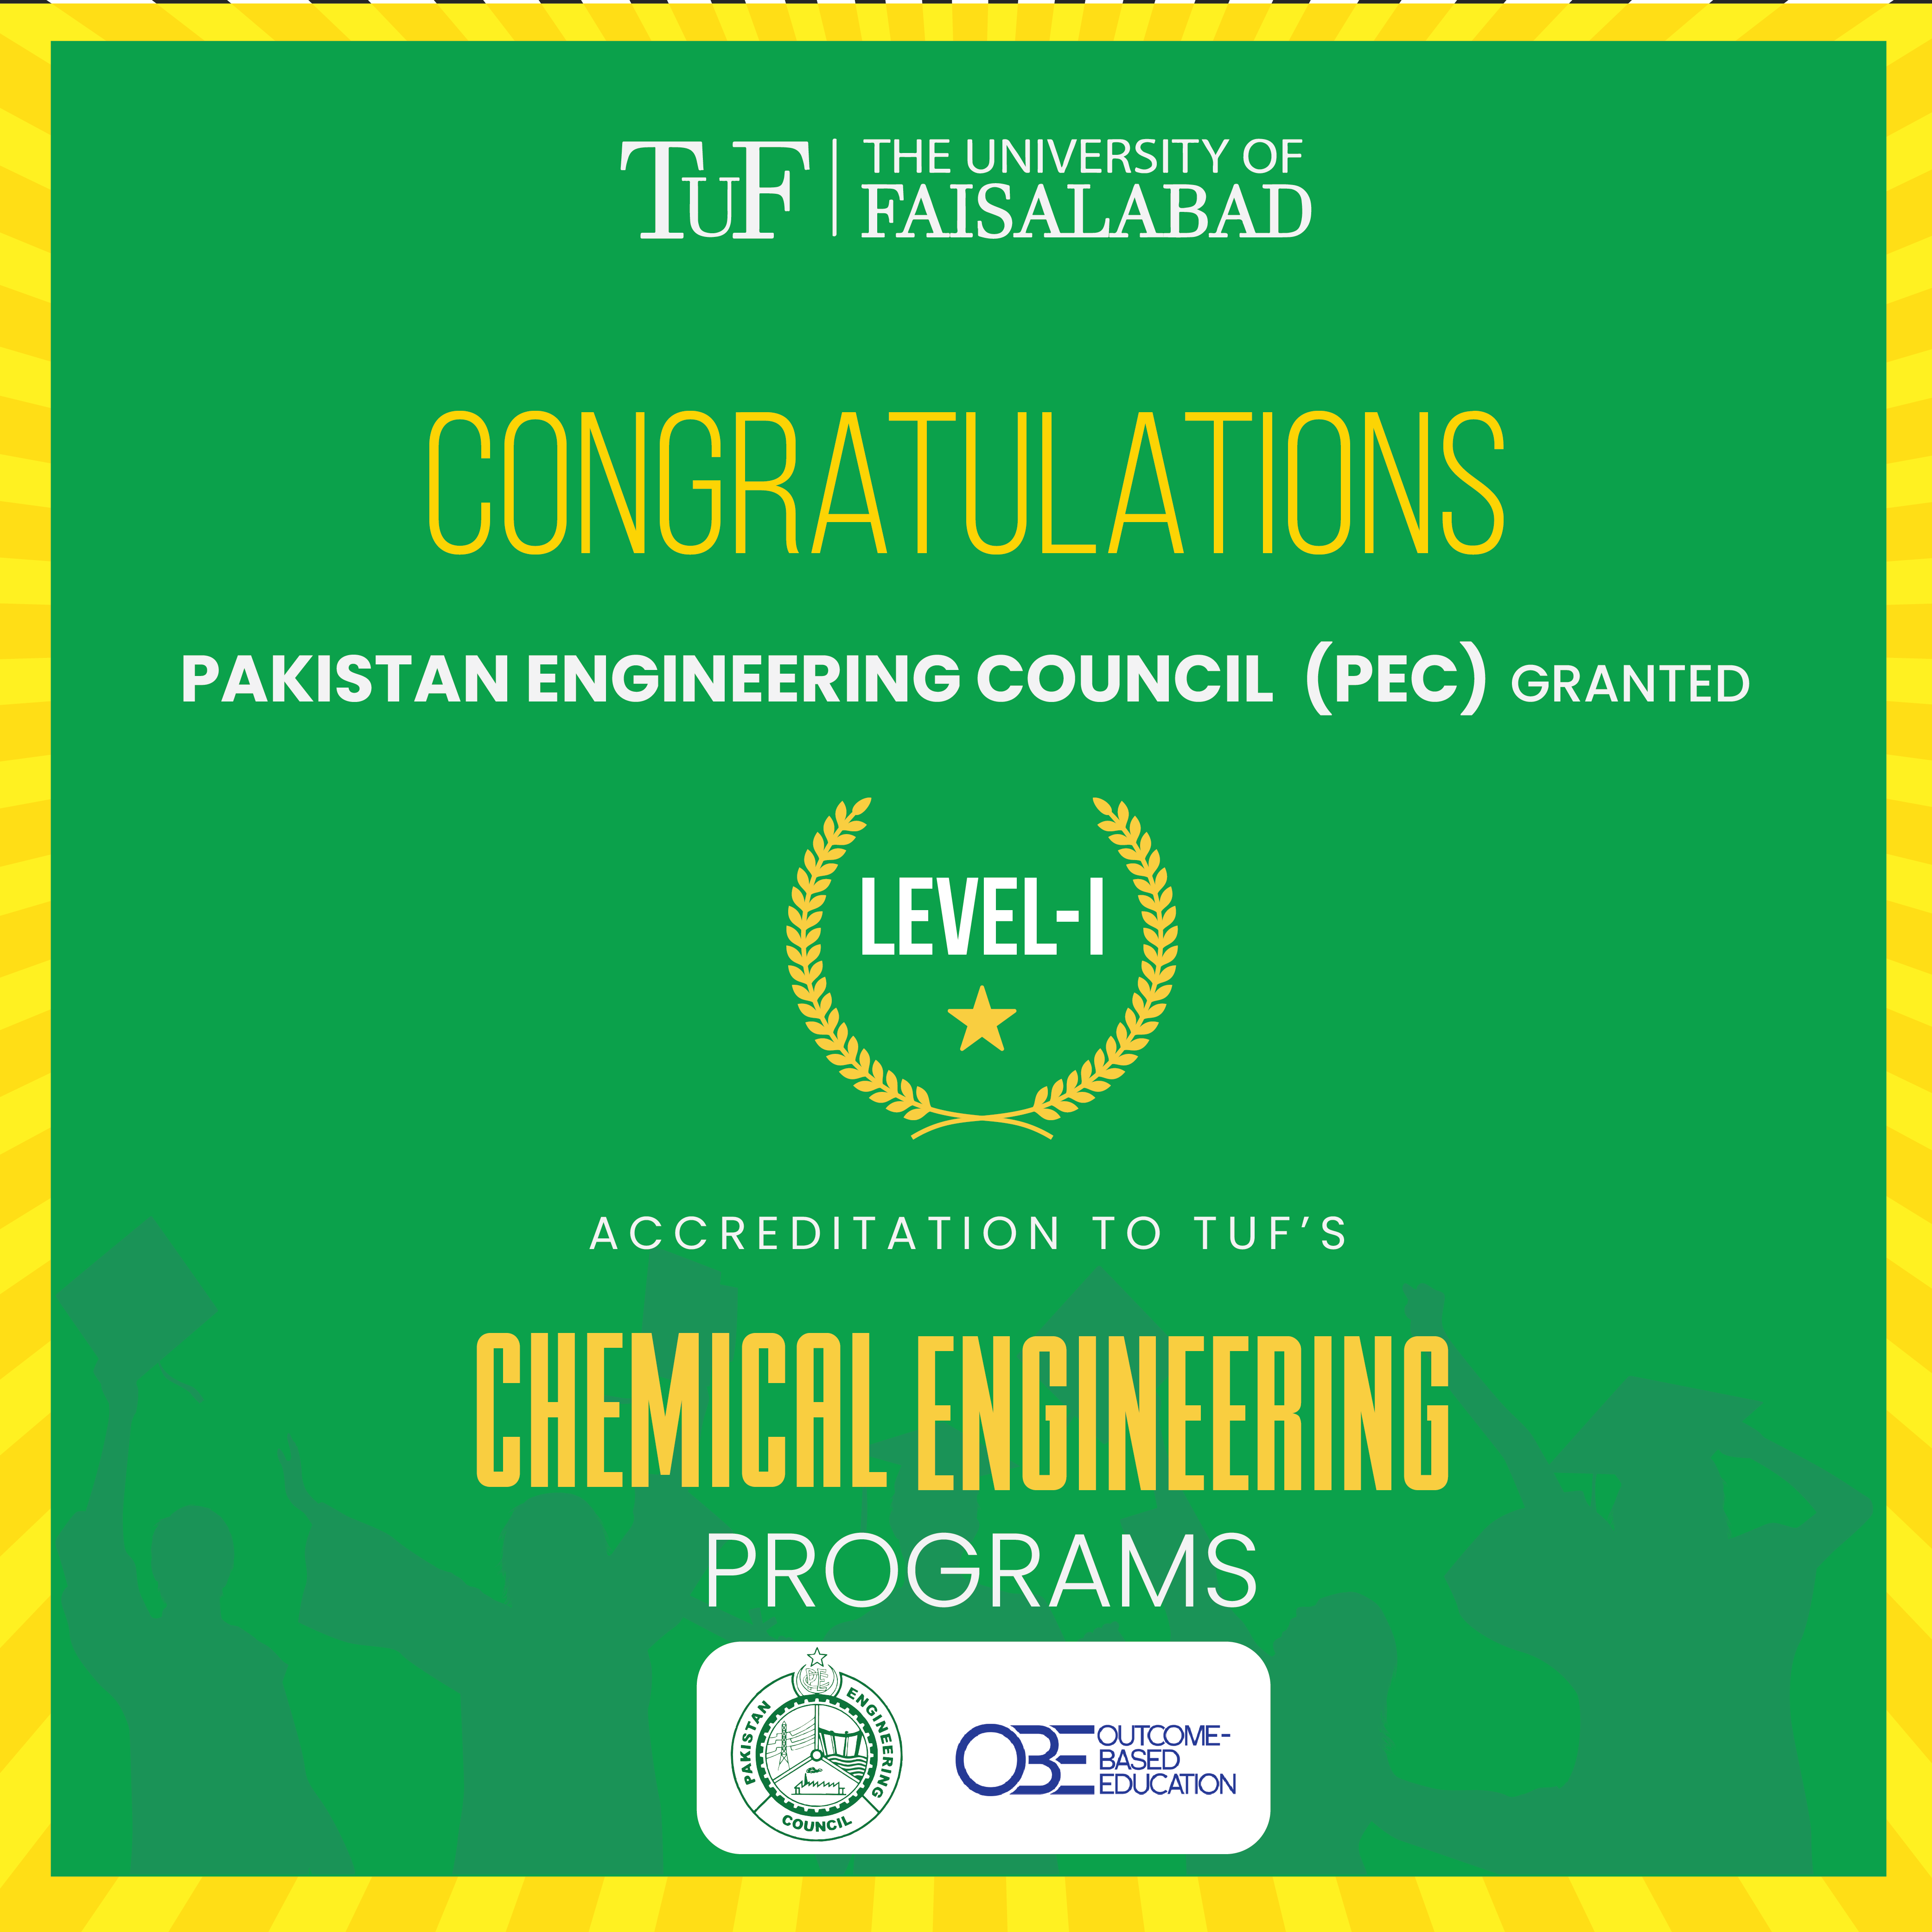 Accreditation of TUF's Chemical Engineering